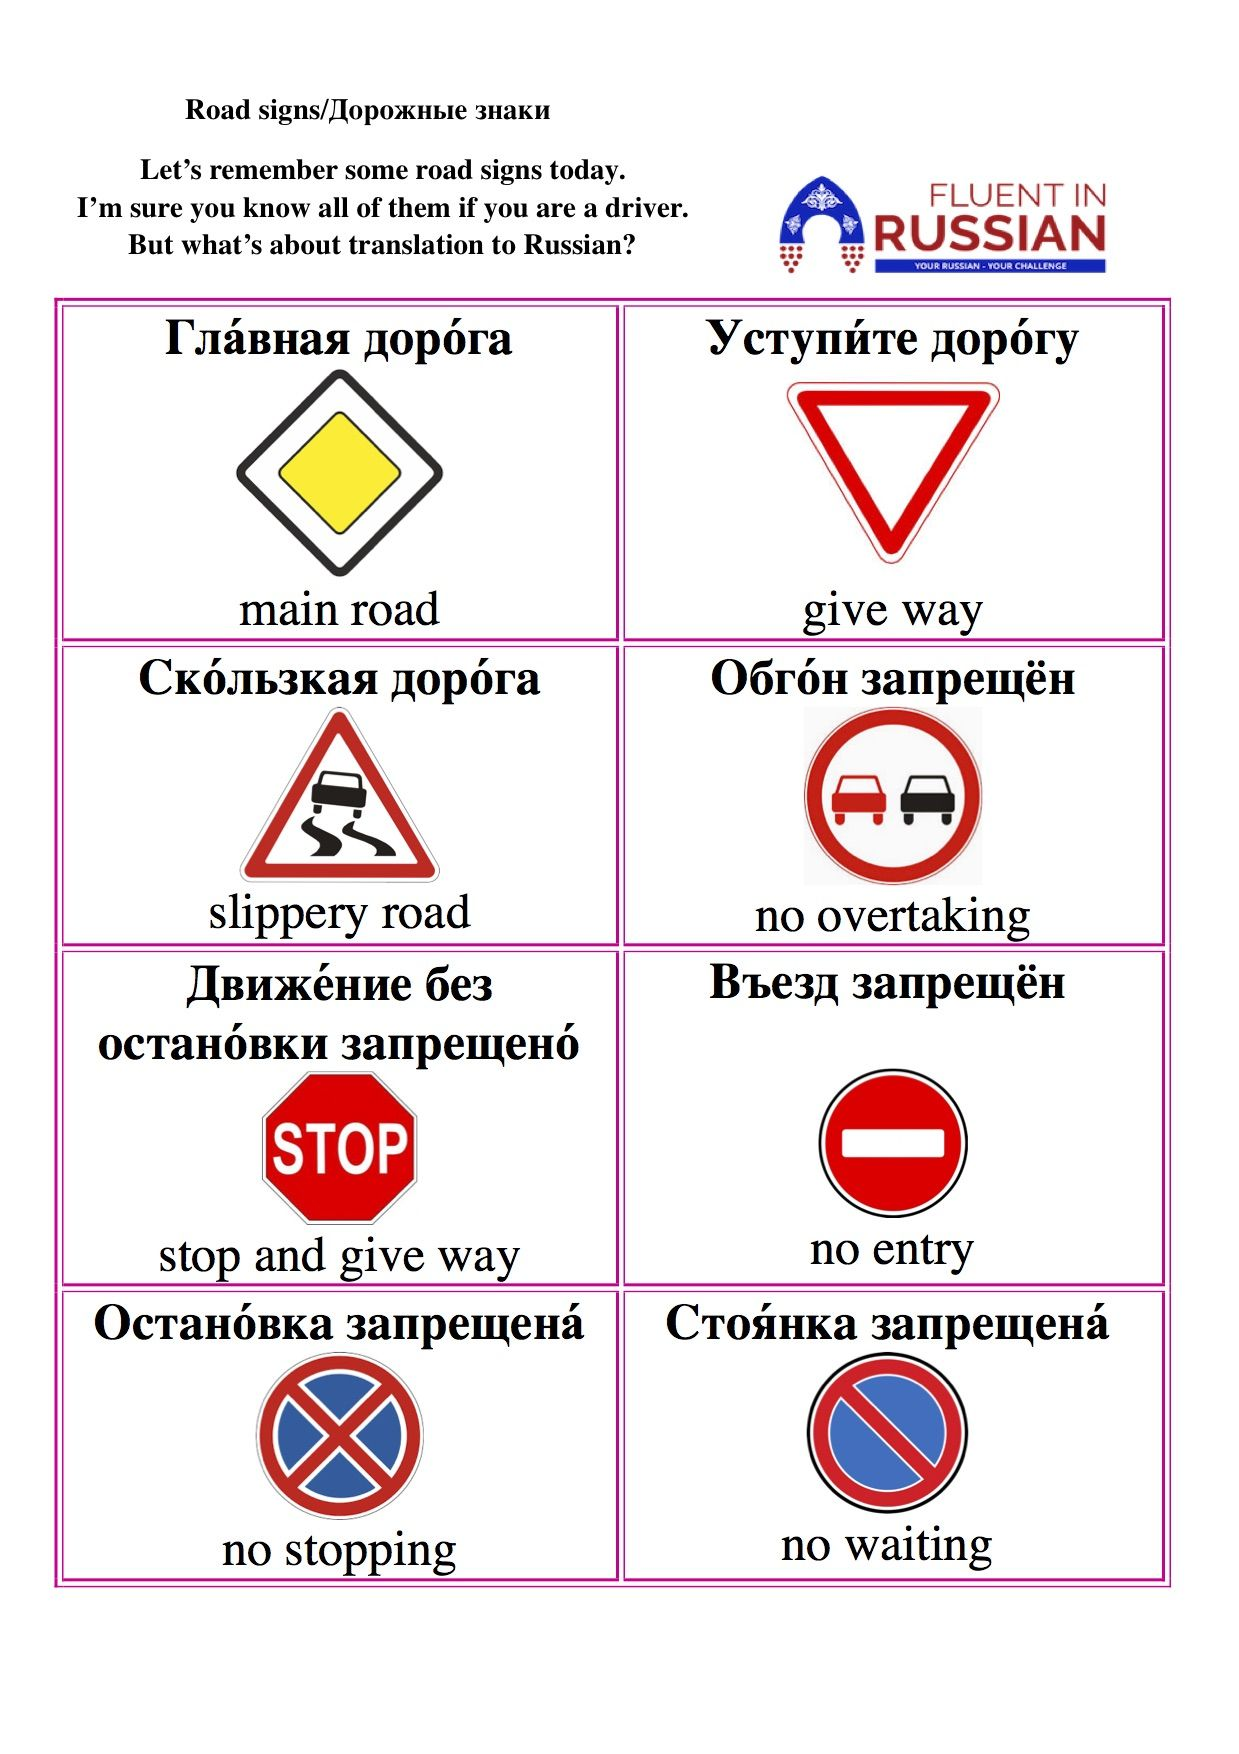 On Learning Russian If You